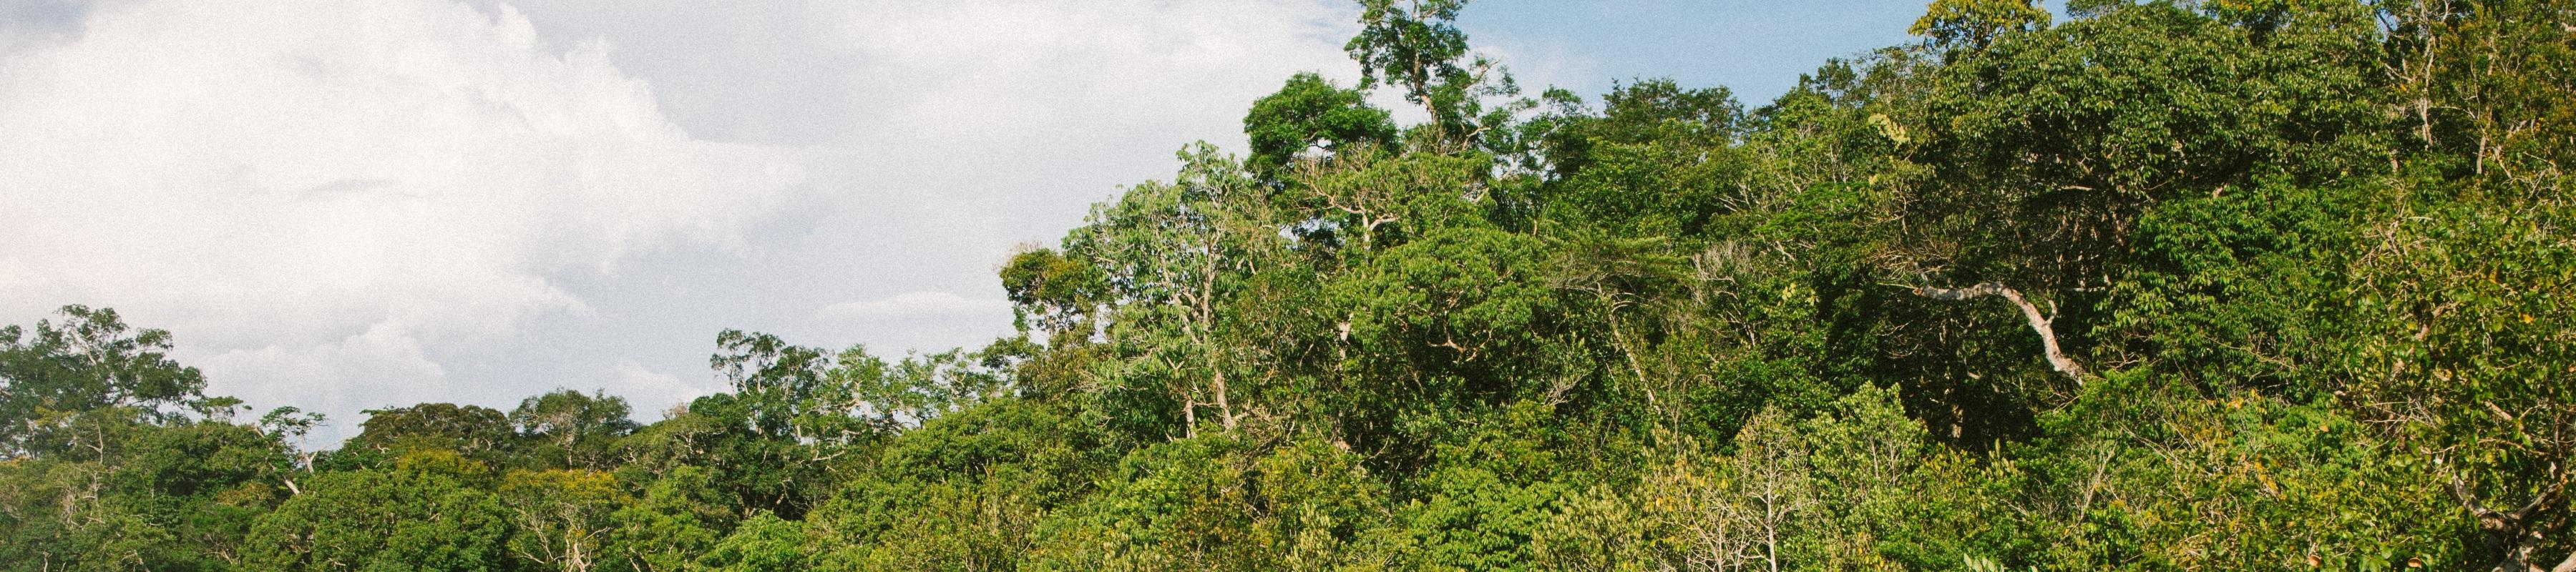 The treetops of an Amazon scene